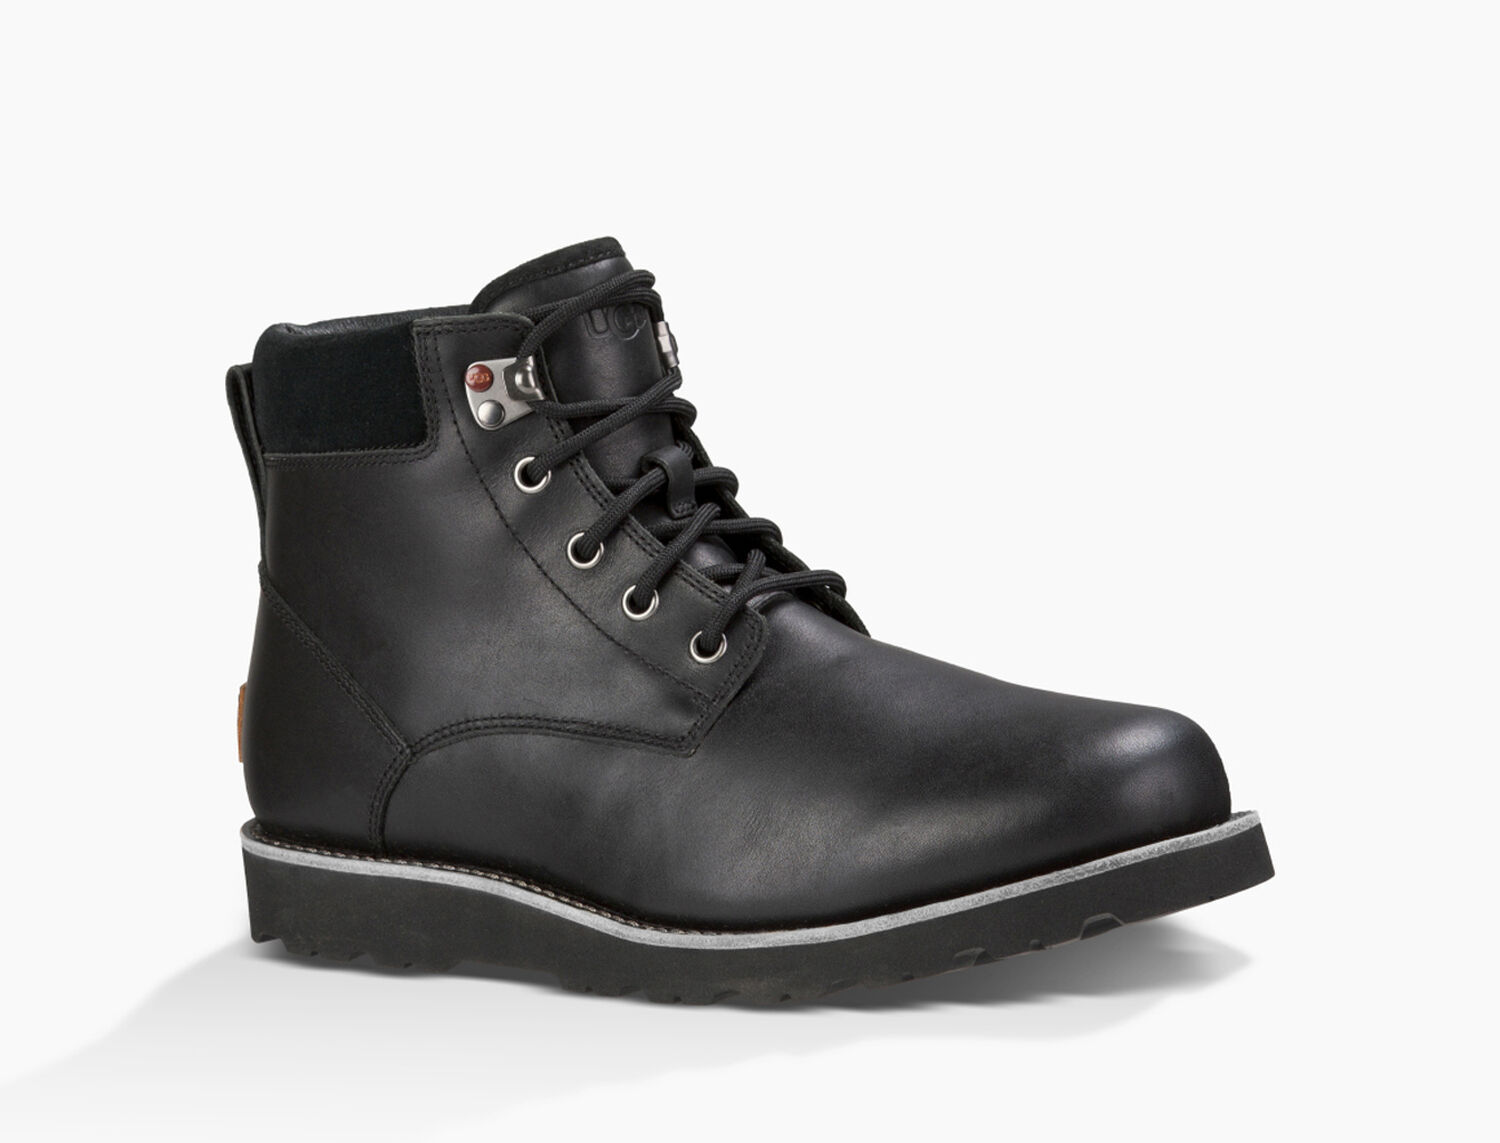 e8e8e56f703 Men's Share this product Seton TL Boot